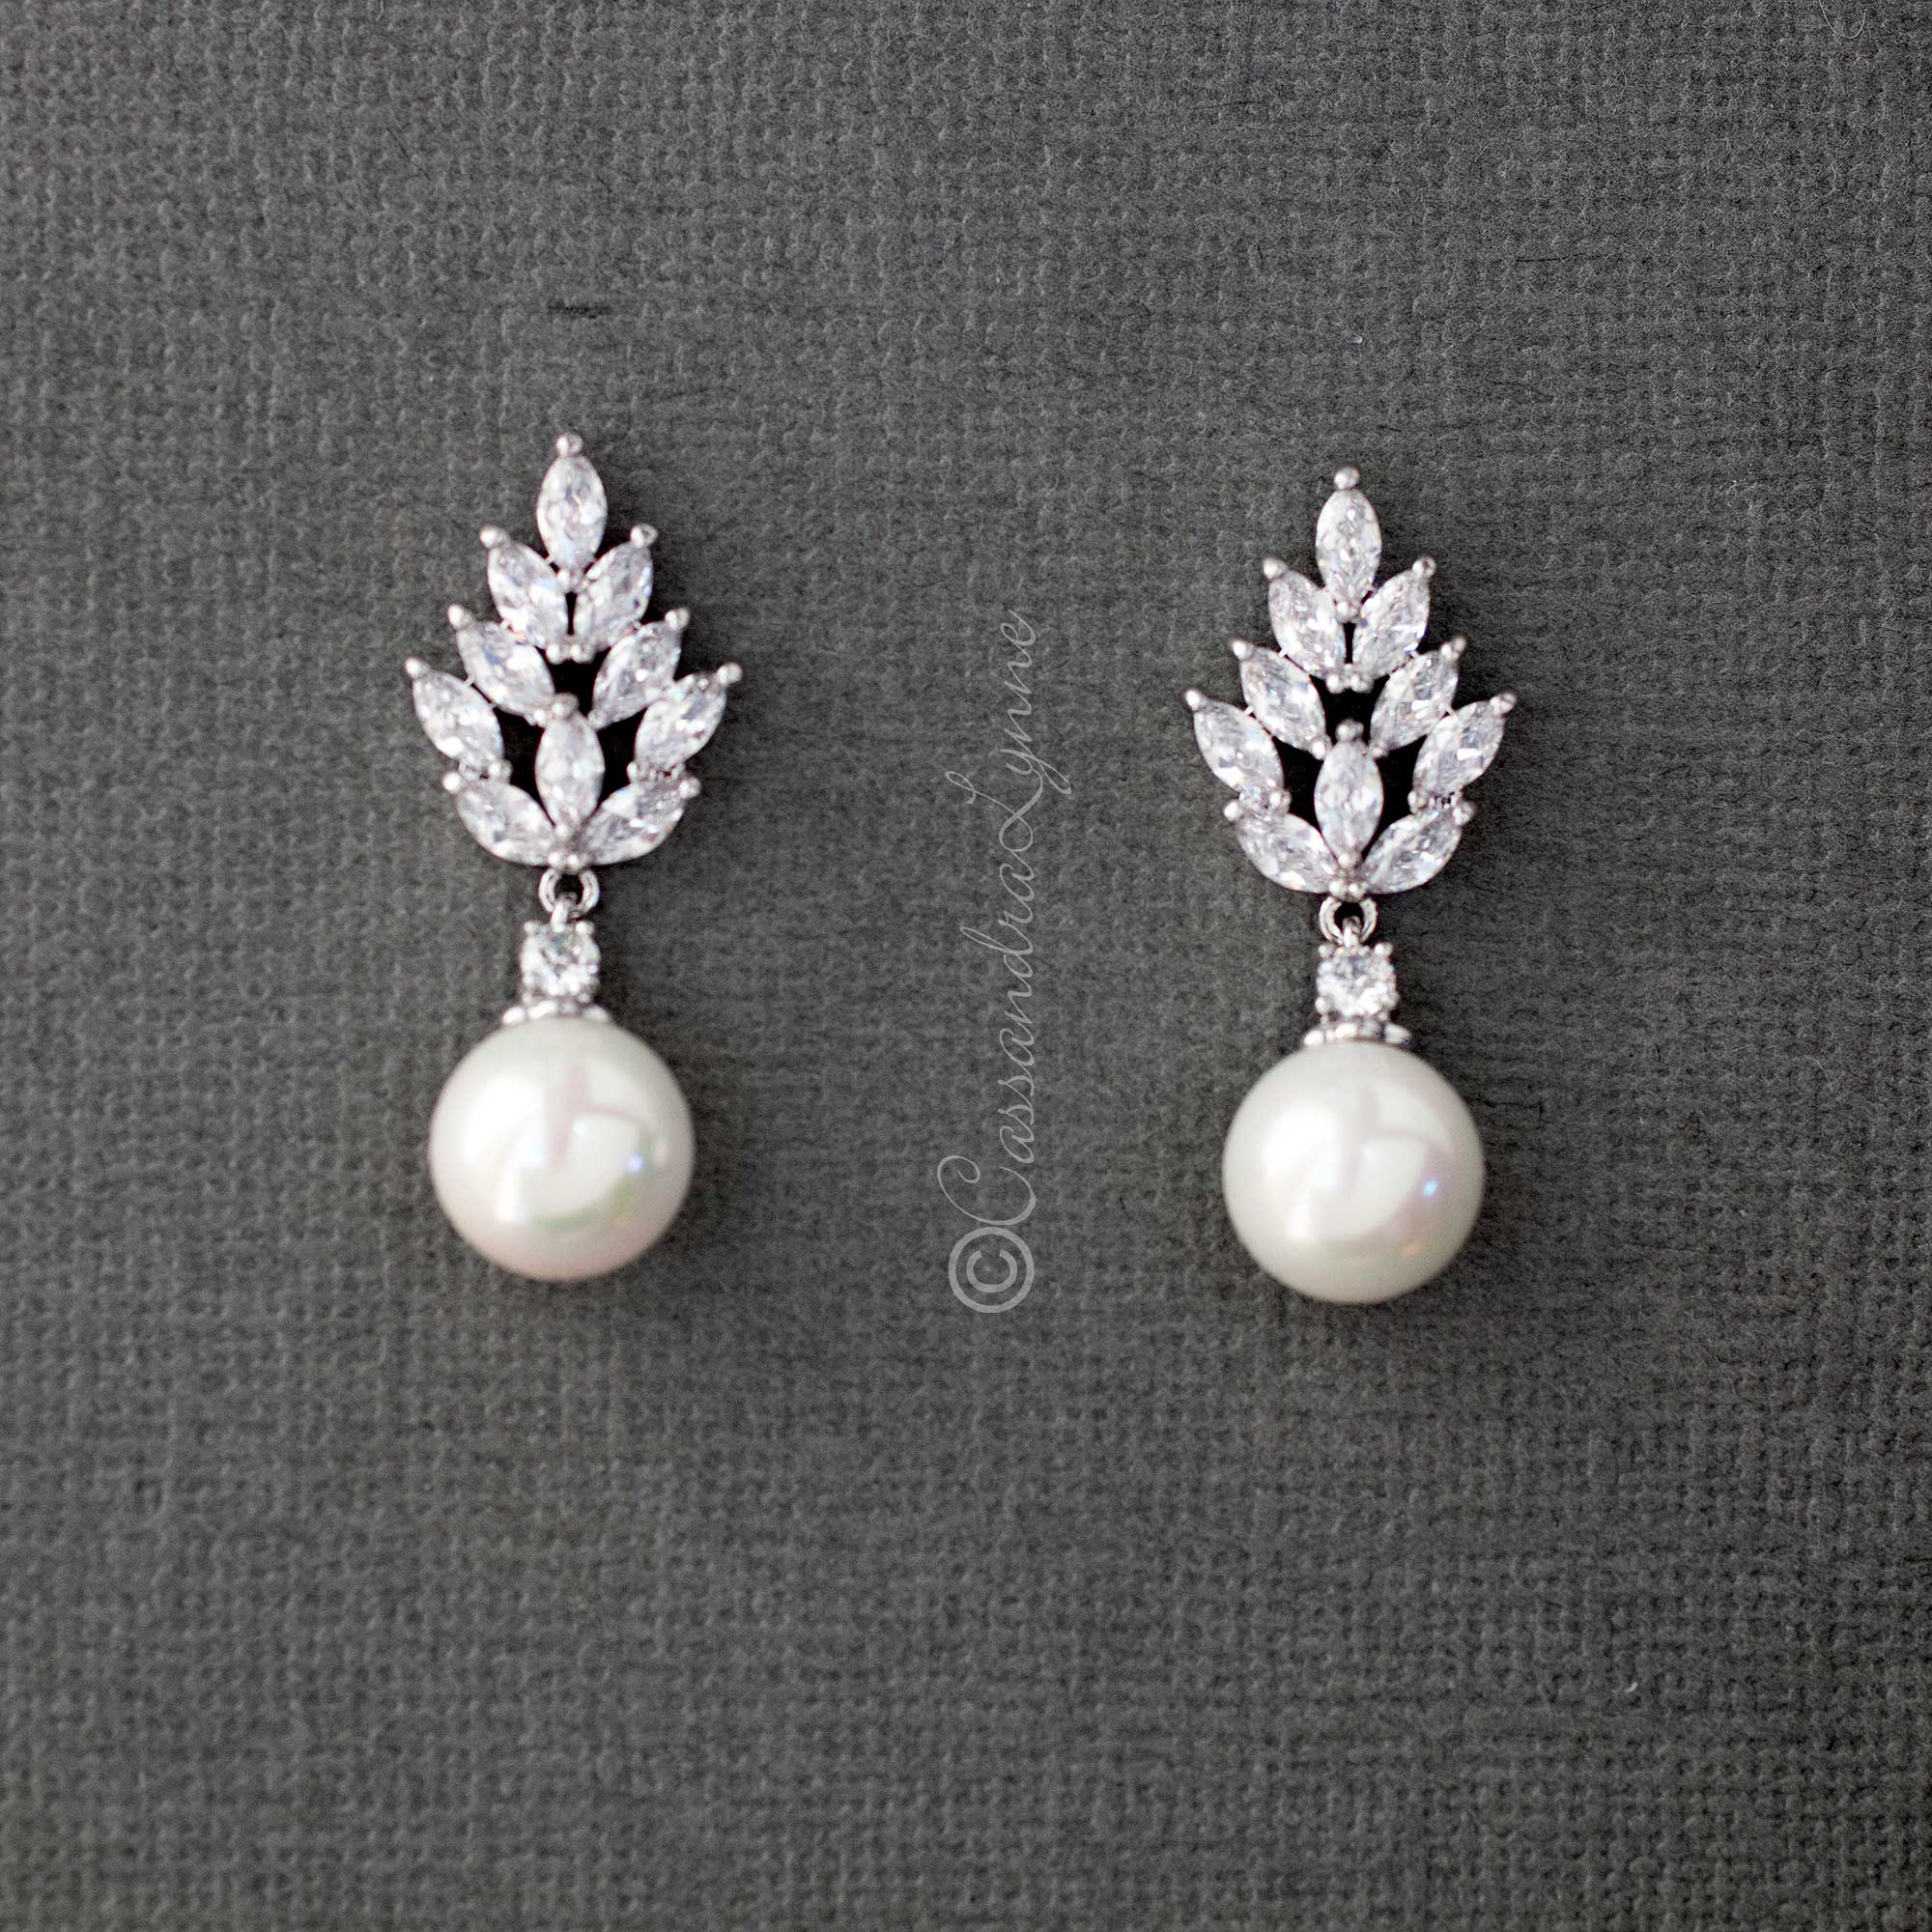 Vintage Pearl and CZ Bridal Earrings